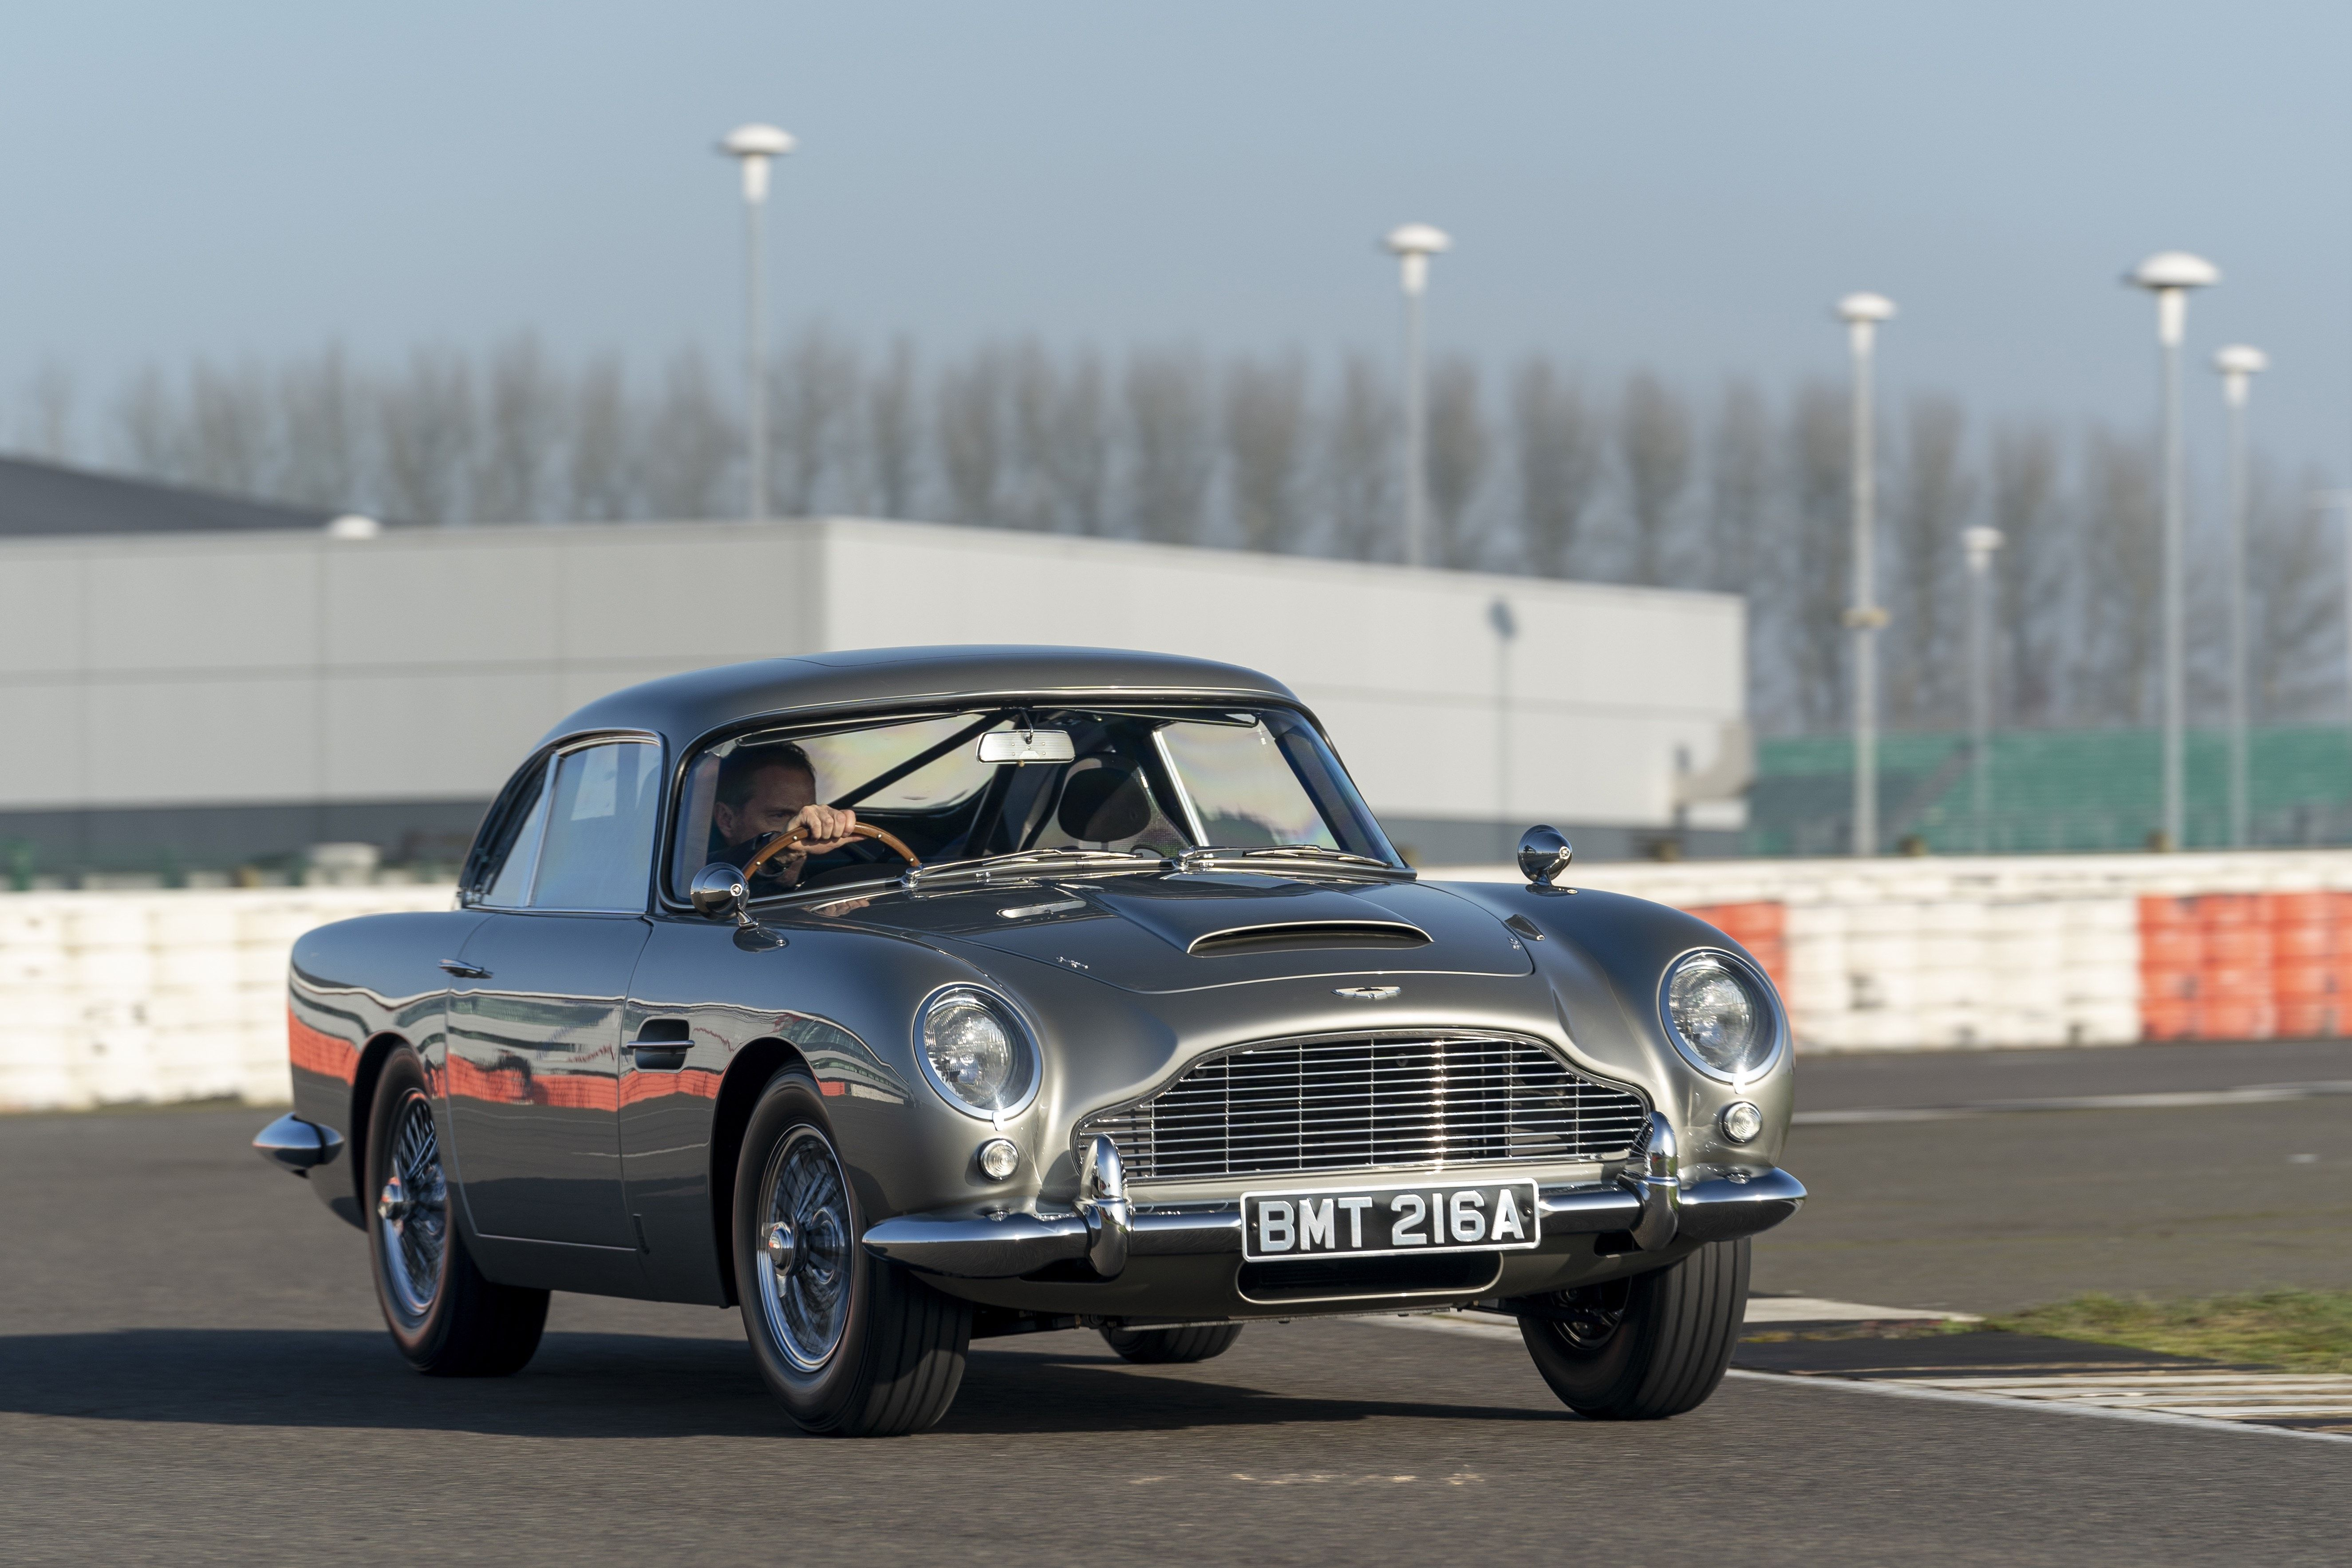 All About Aston Martin Db5 And Its Driver In New James Bond Movie